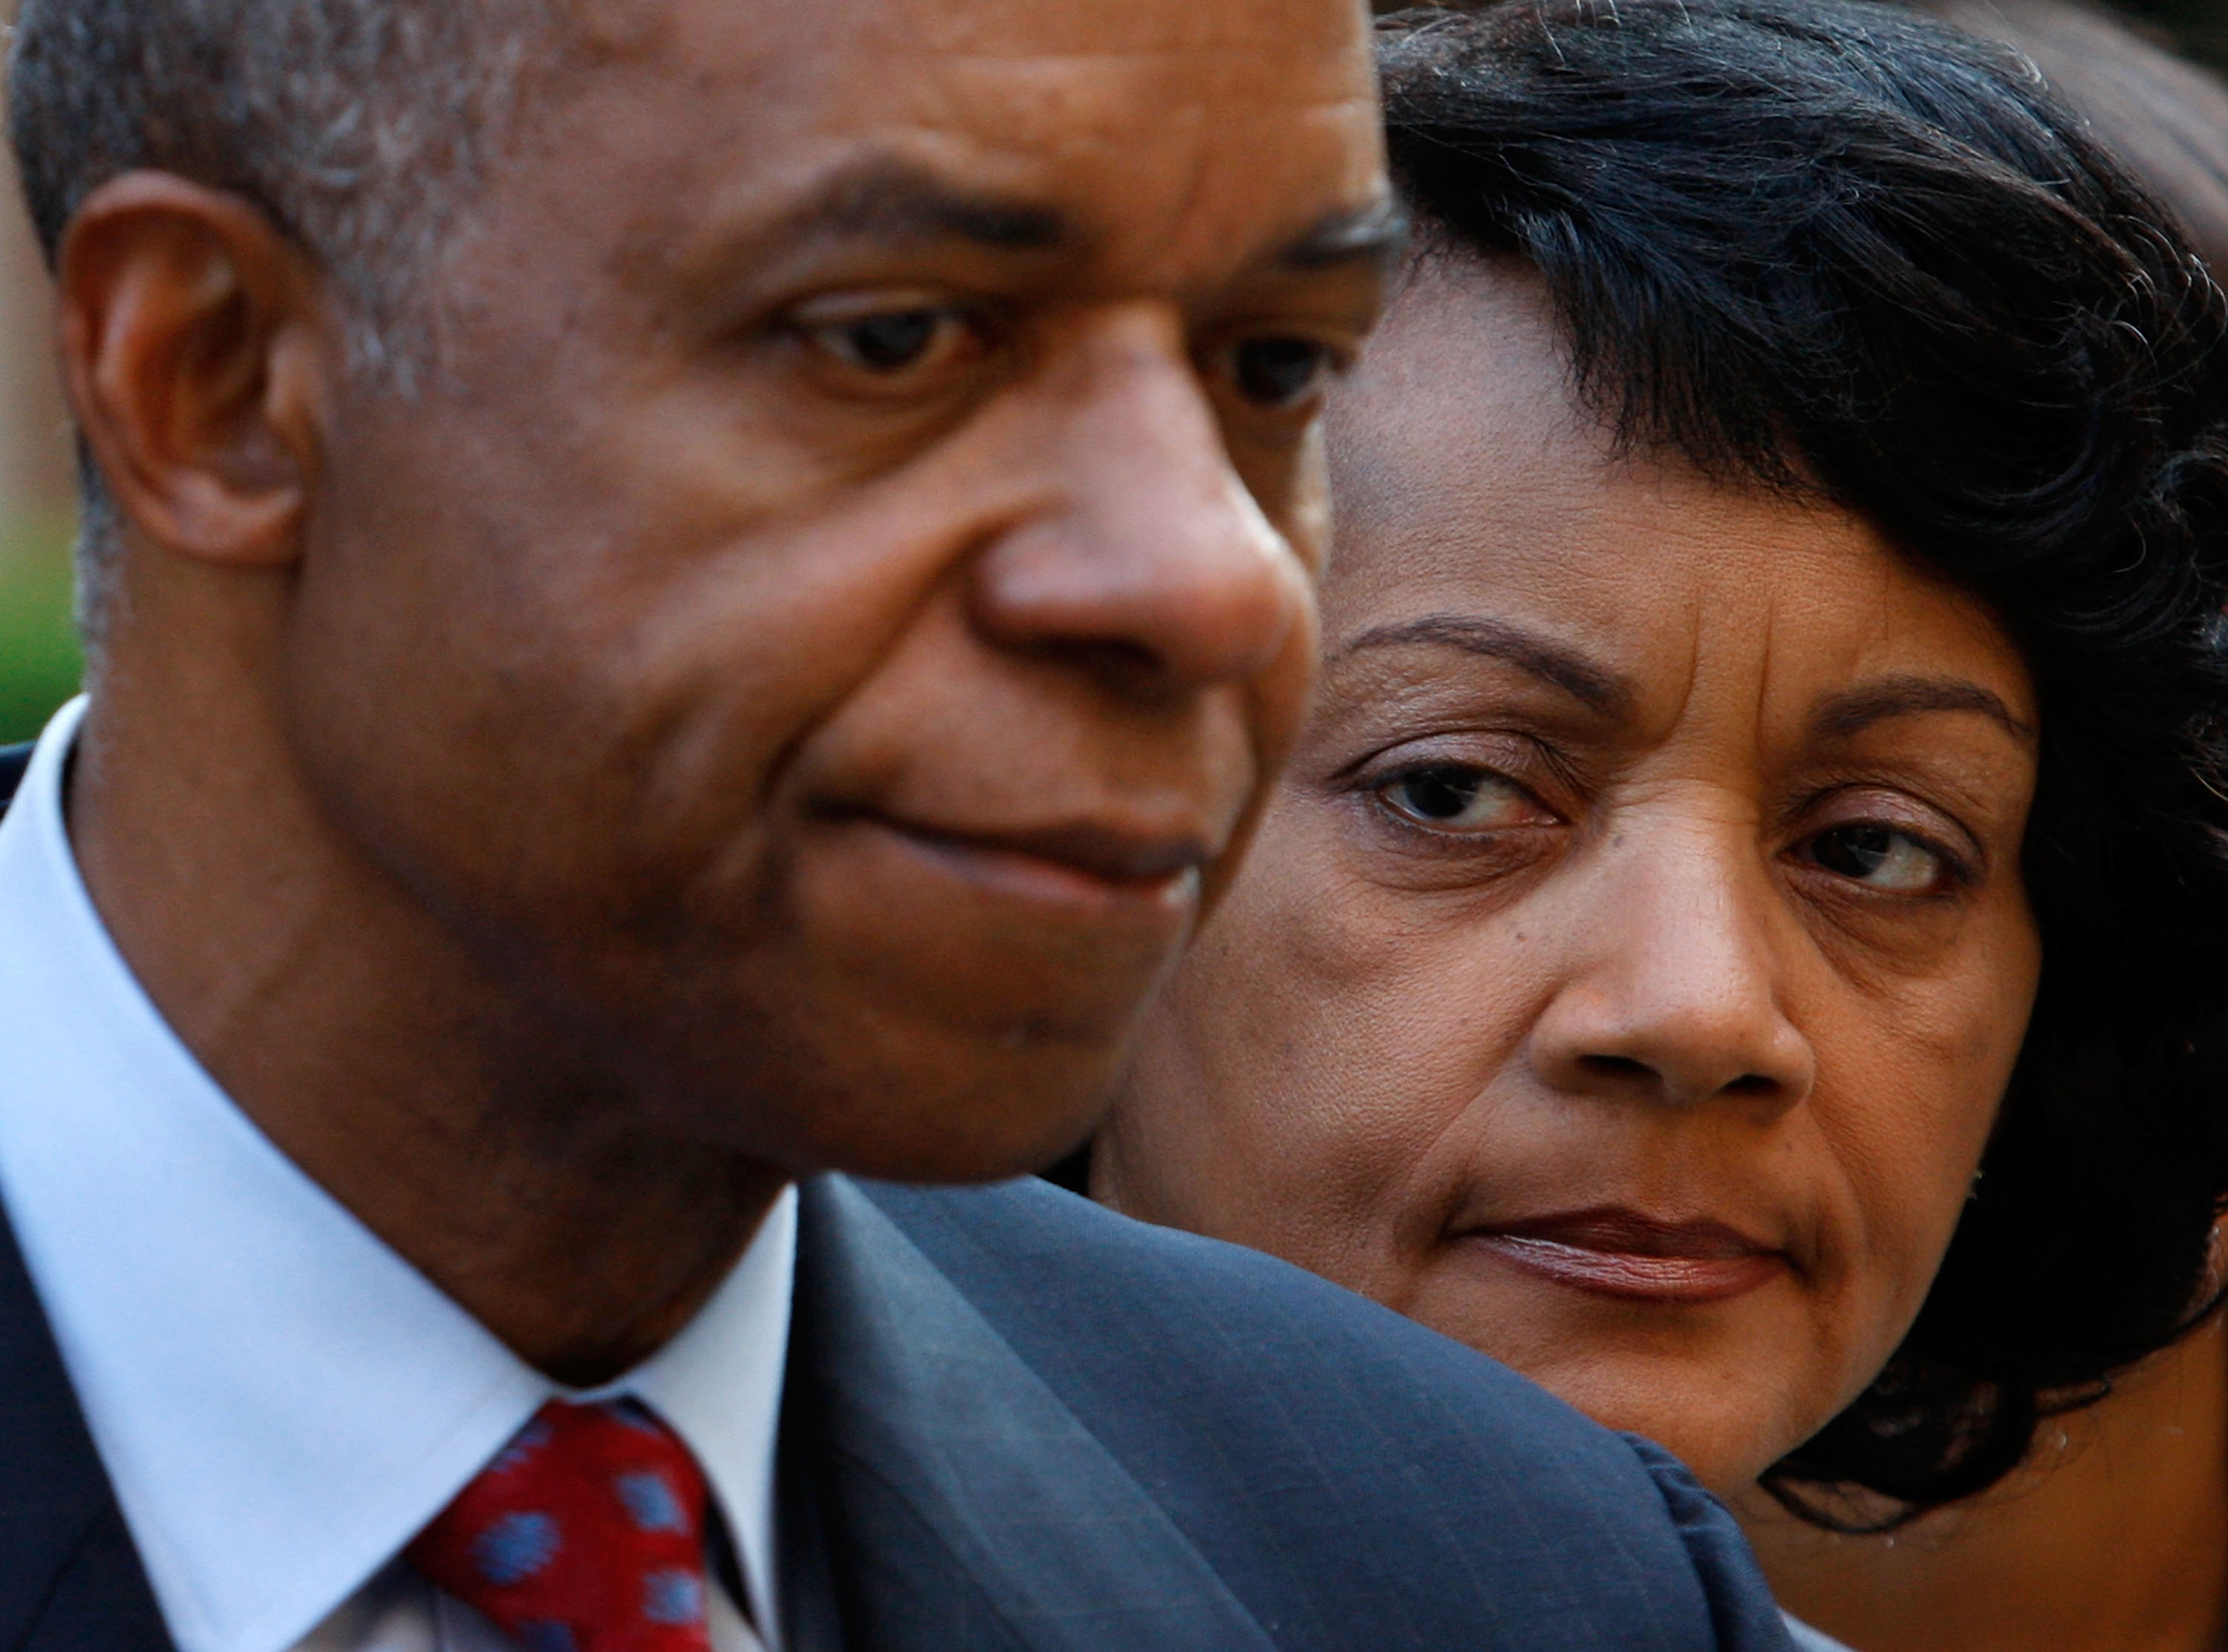 Rep. William Jefferson Found Guilty Of 11 Of 16 Counts In Bribery Trial